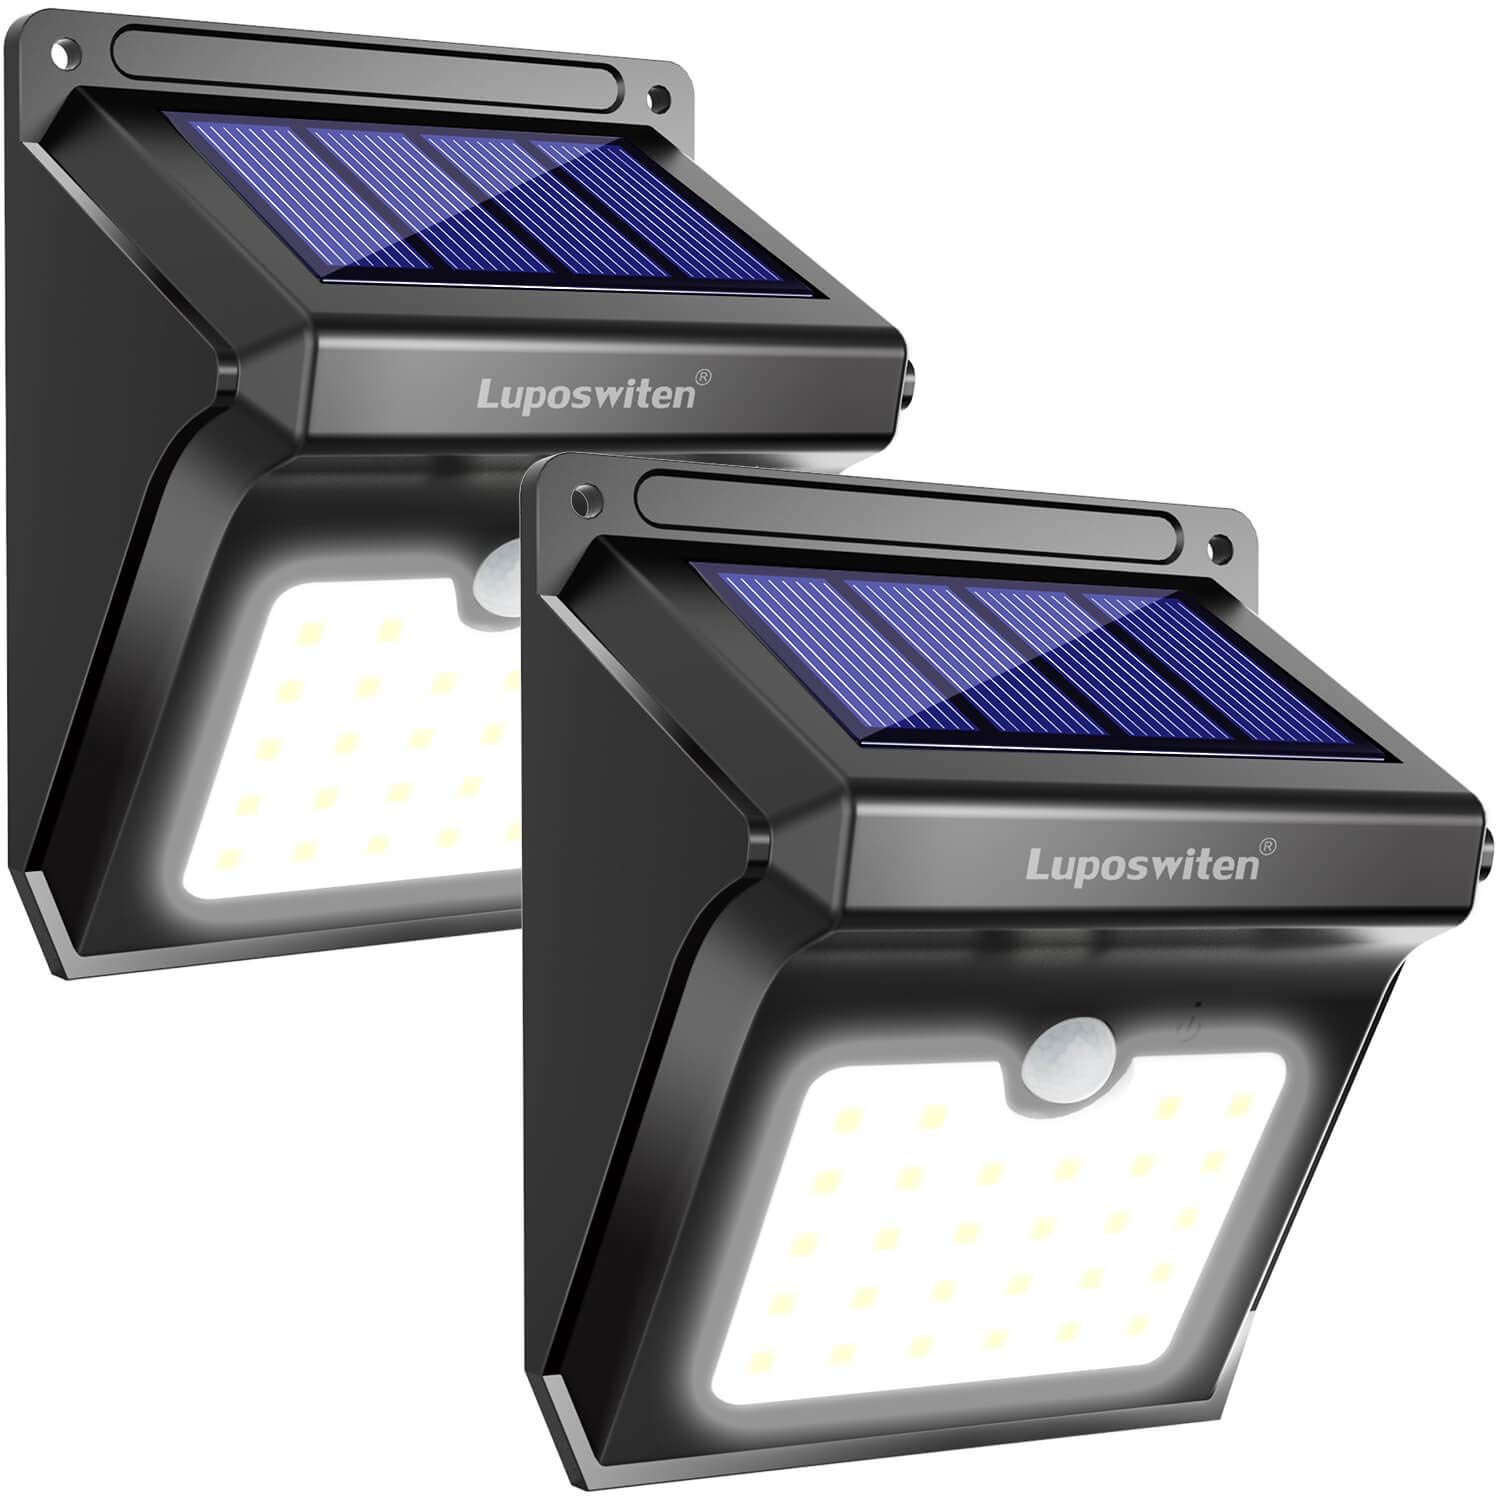 Solar Lights Outdoor 2Pieces Solar Waterproof Wall Light for Outside Garden Pathway Walkway Fence Patio,Yard Luposwiten 28 LED Solar Security Lights with Motion Sensor